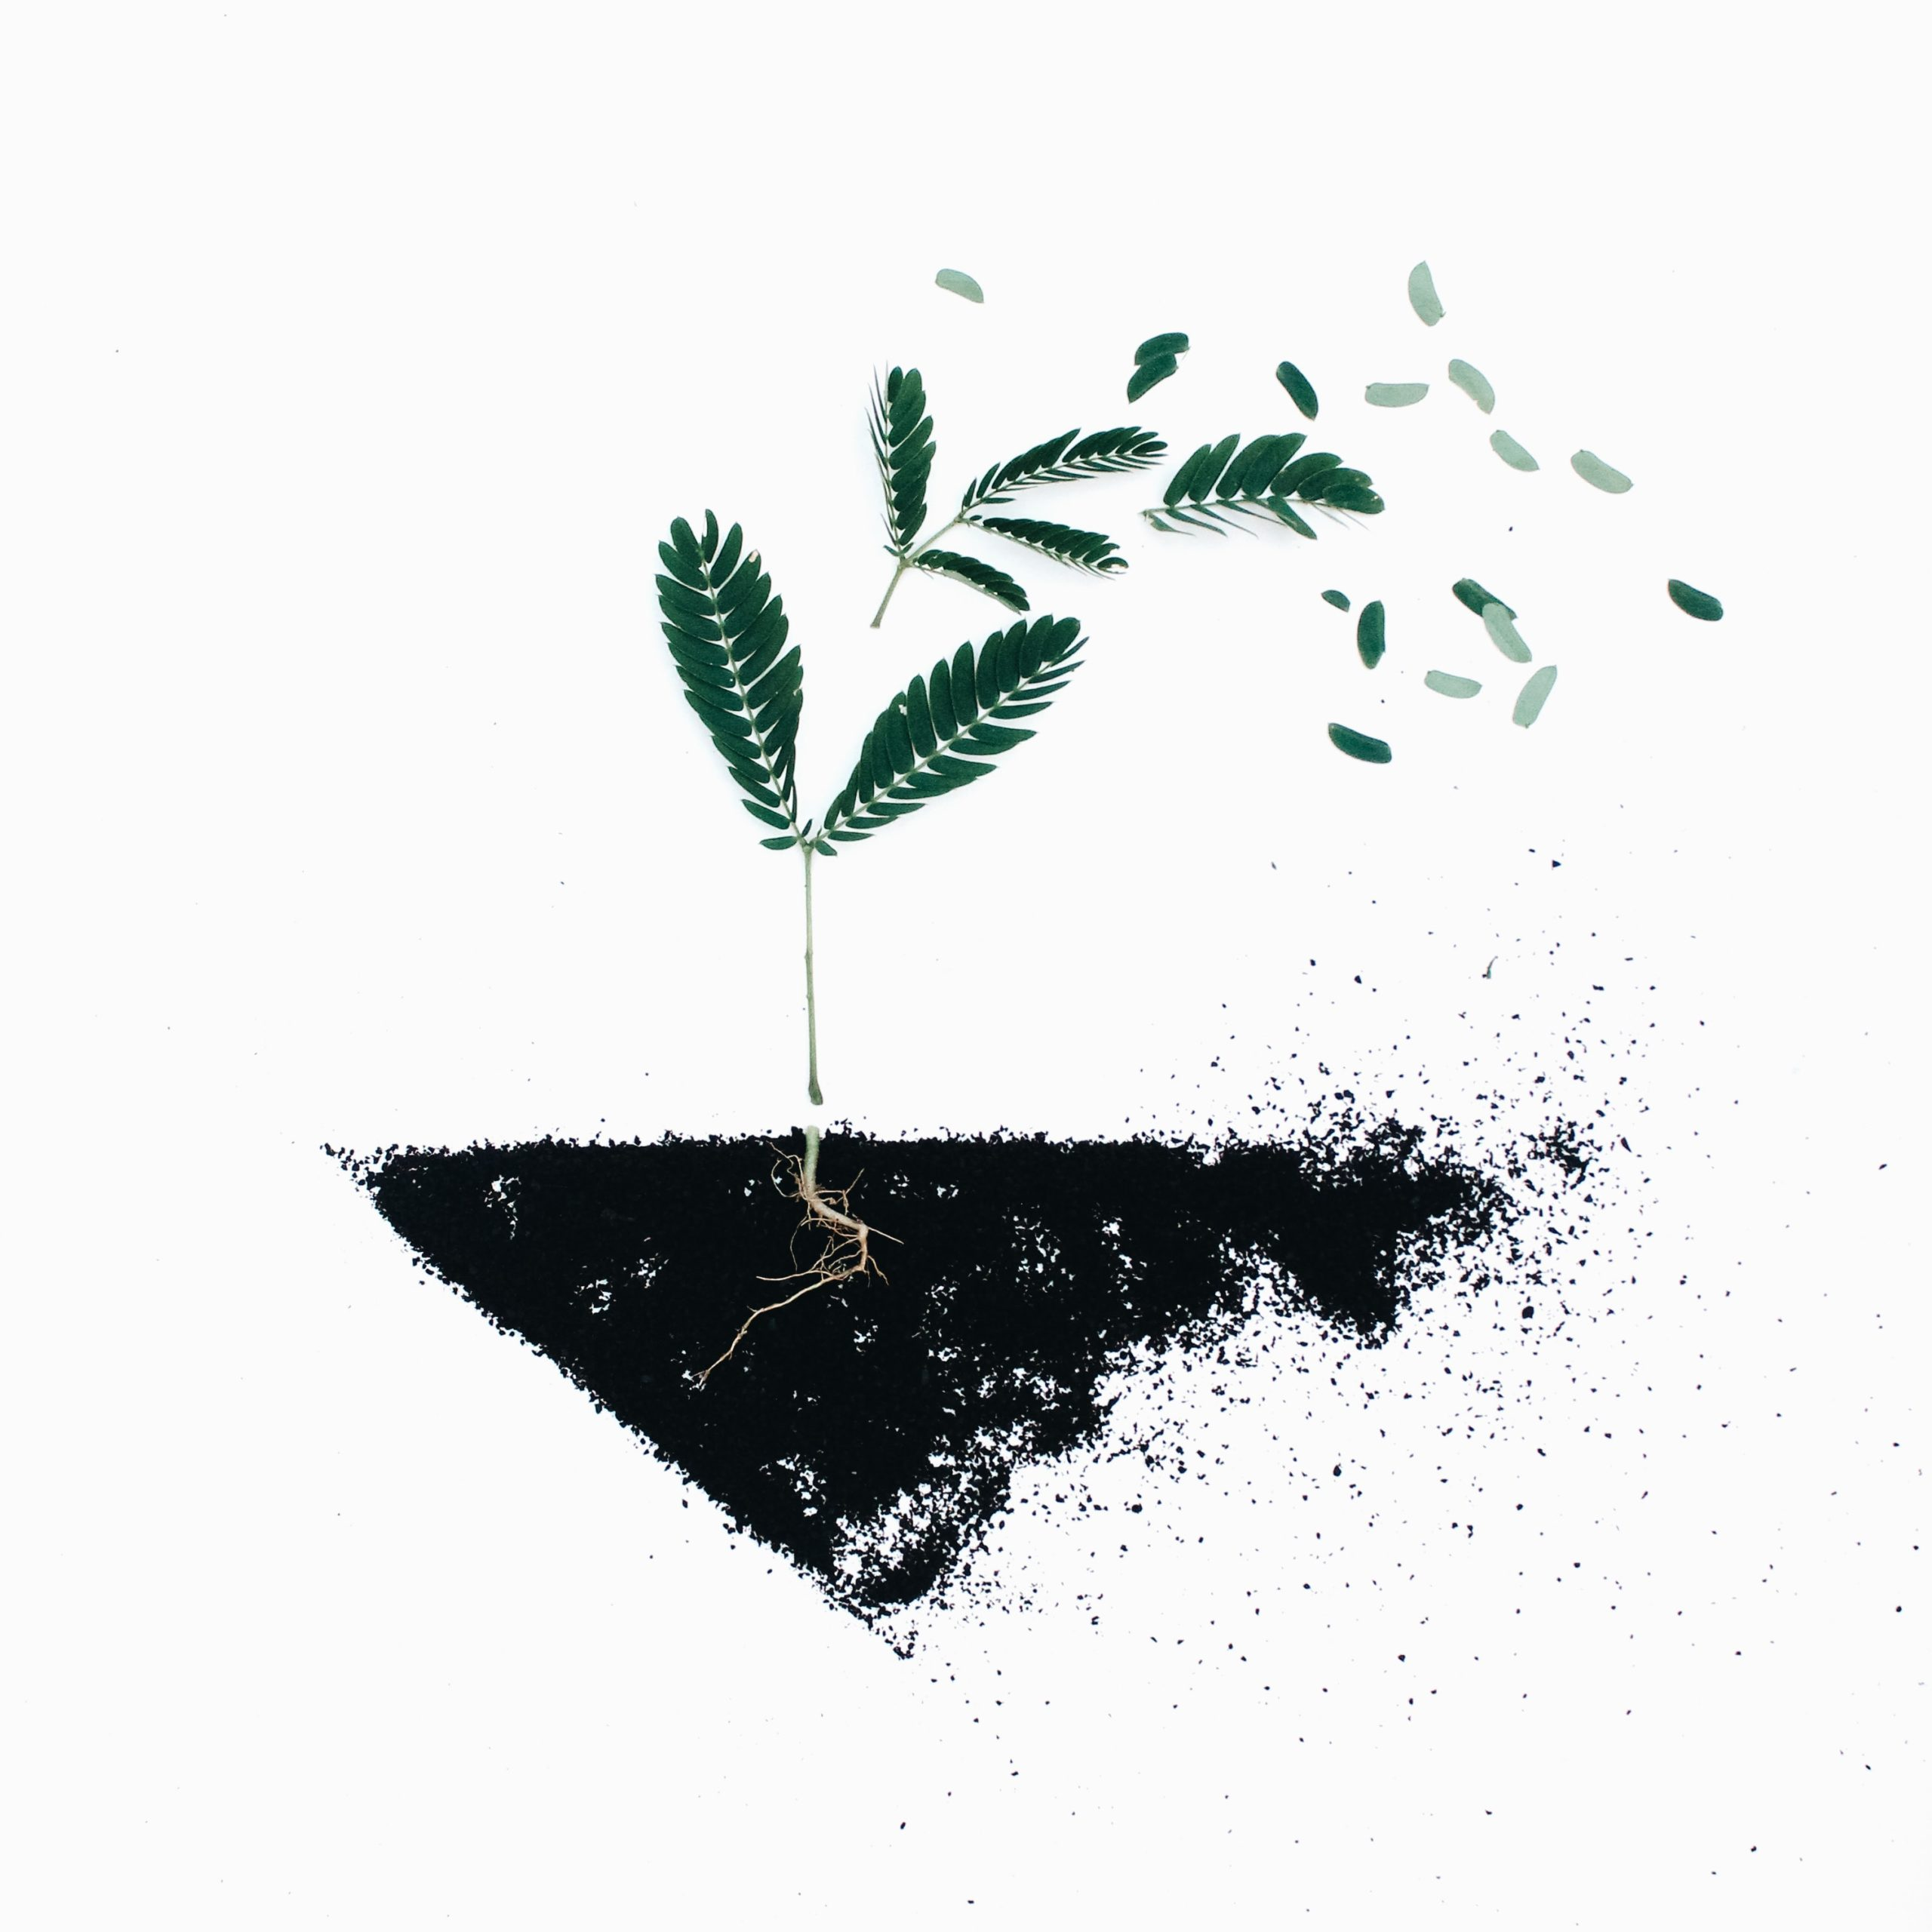 Photo showing a green leaf on black soil, by Evie S. on Unsplash